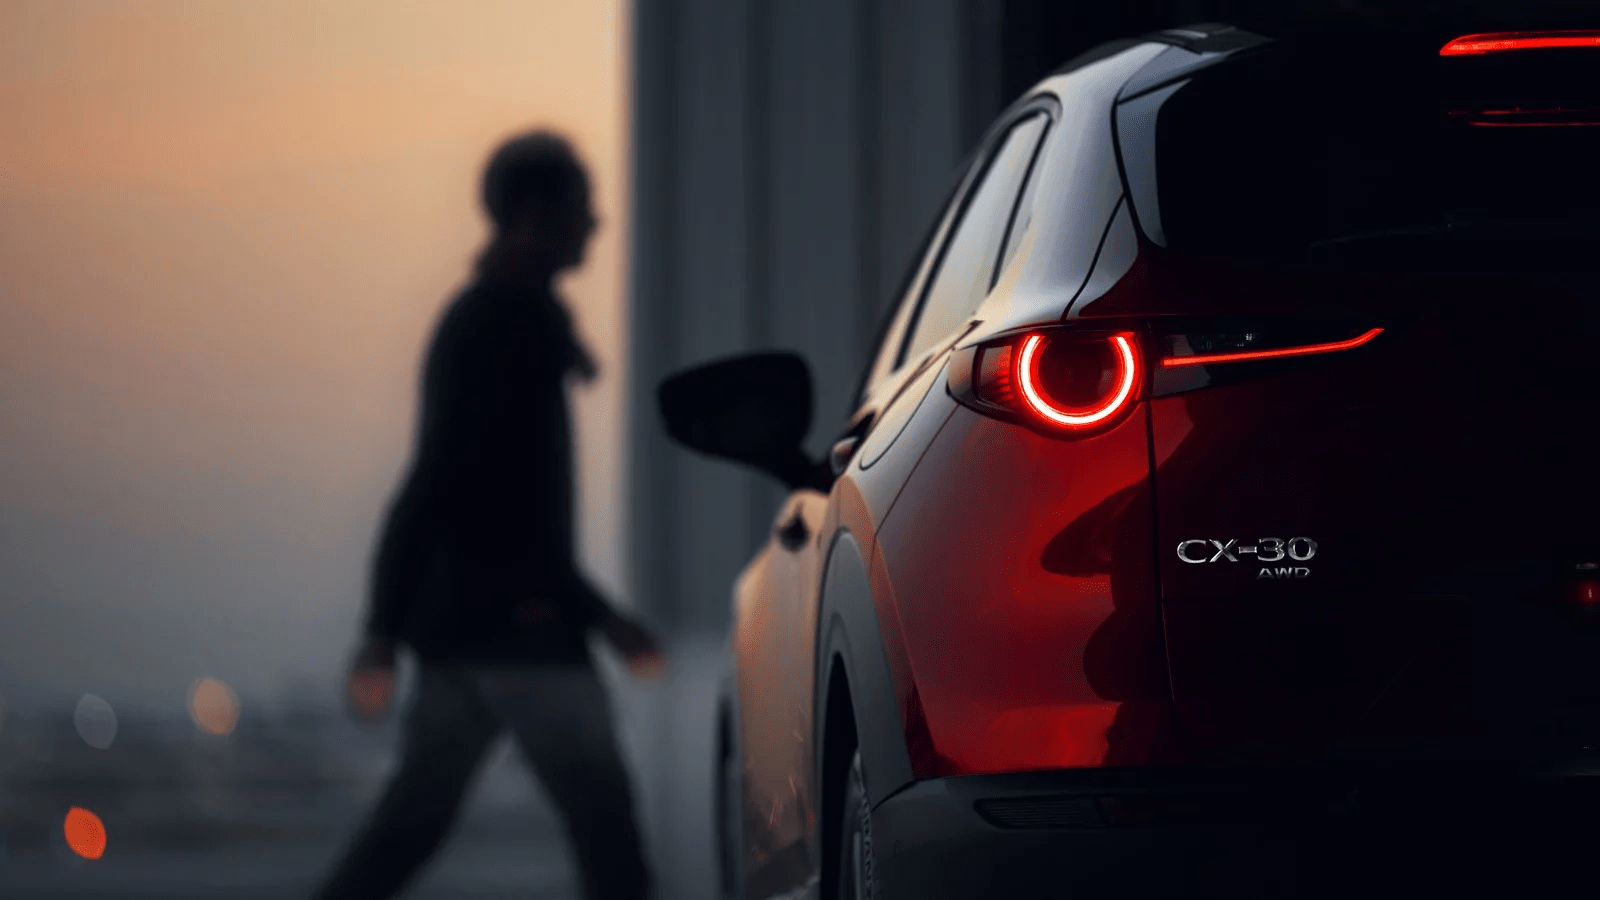 cx-30-gallery-18